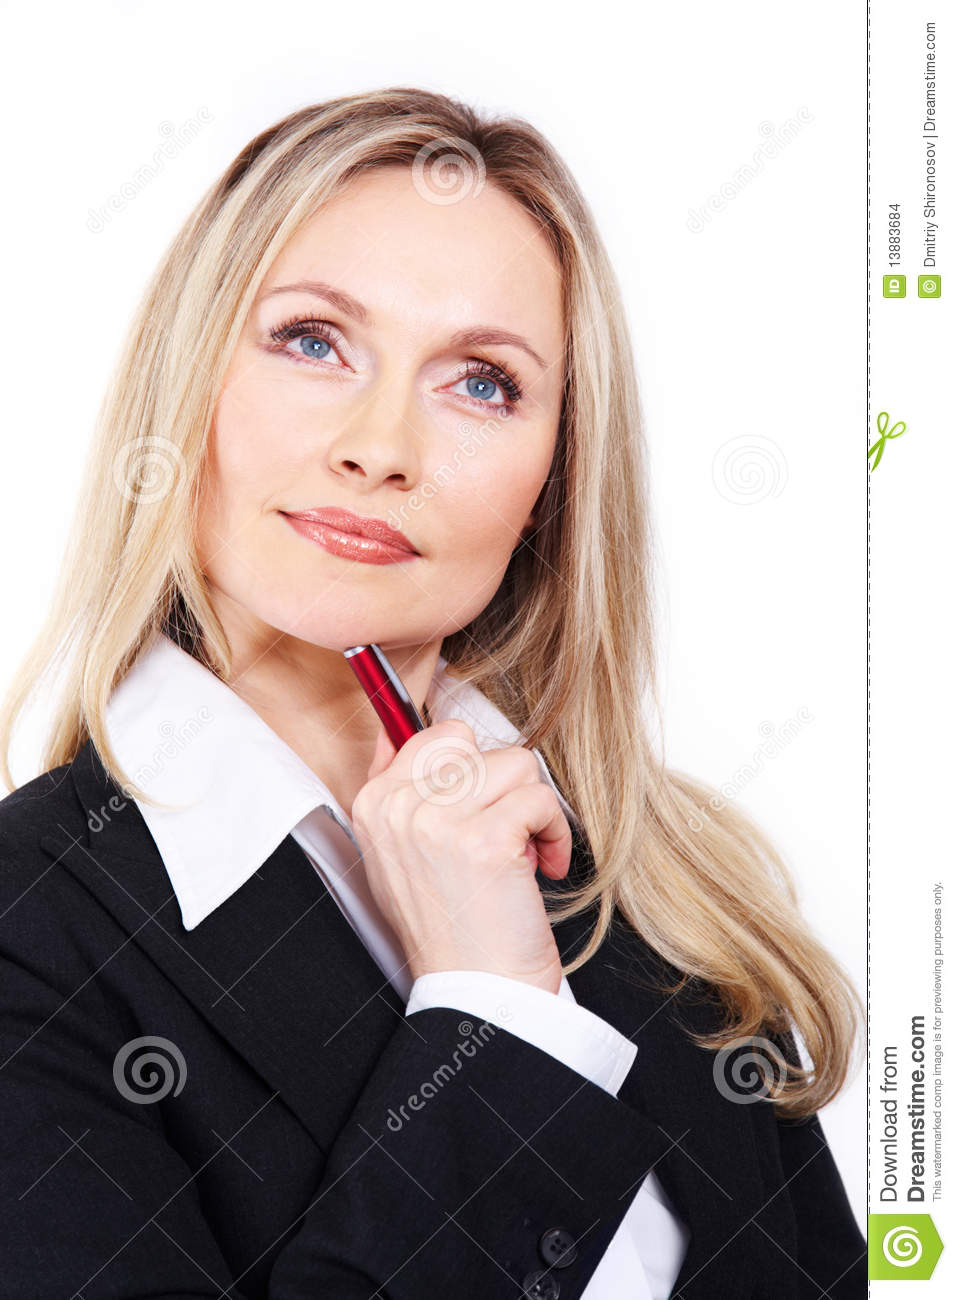 Bossy Woman Stock Images - Image: 13883684 Woman